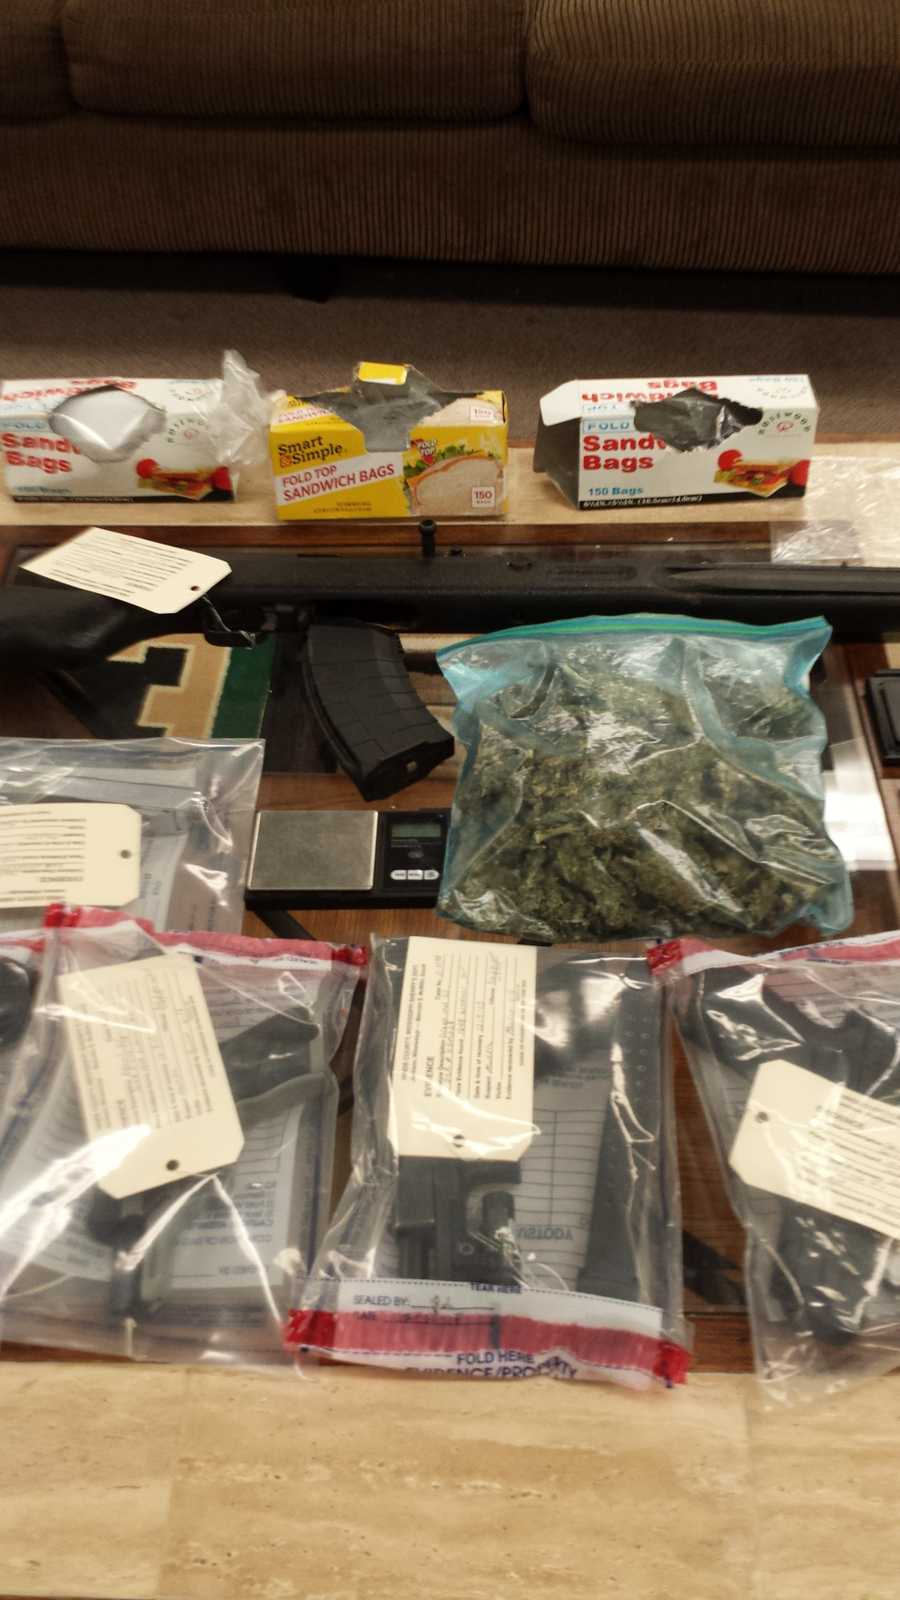 Deputies arrested the following eight people, all of whom were charged with possession of marijuana with the intent to distribute while in possession of a firearm.